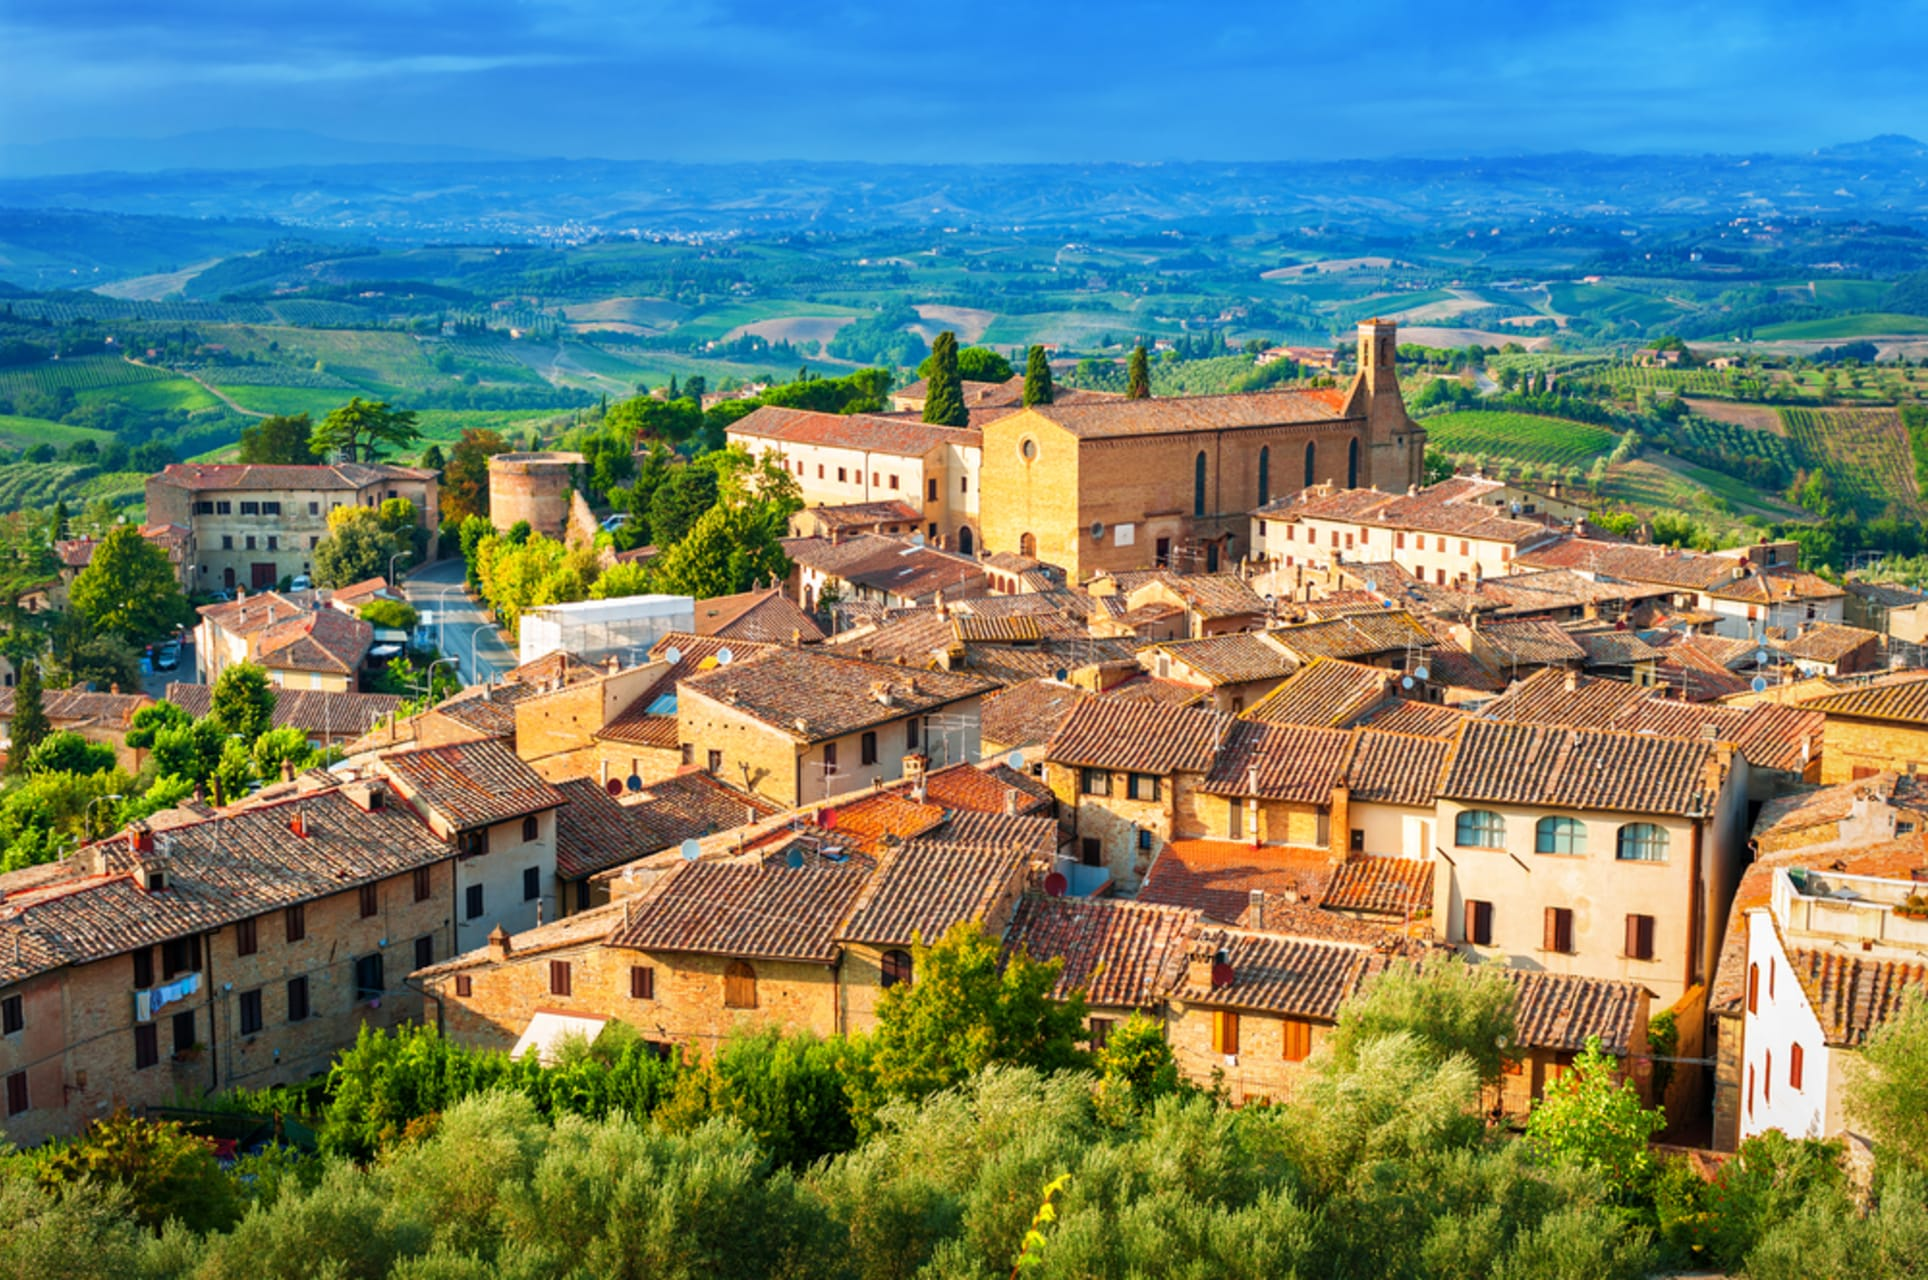 San Gimignano - The Manhattan of the Middle Ages